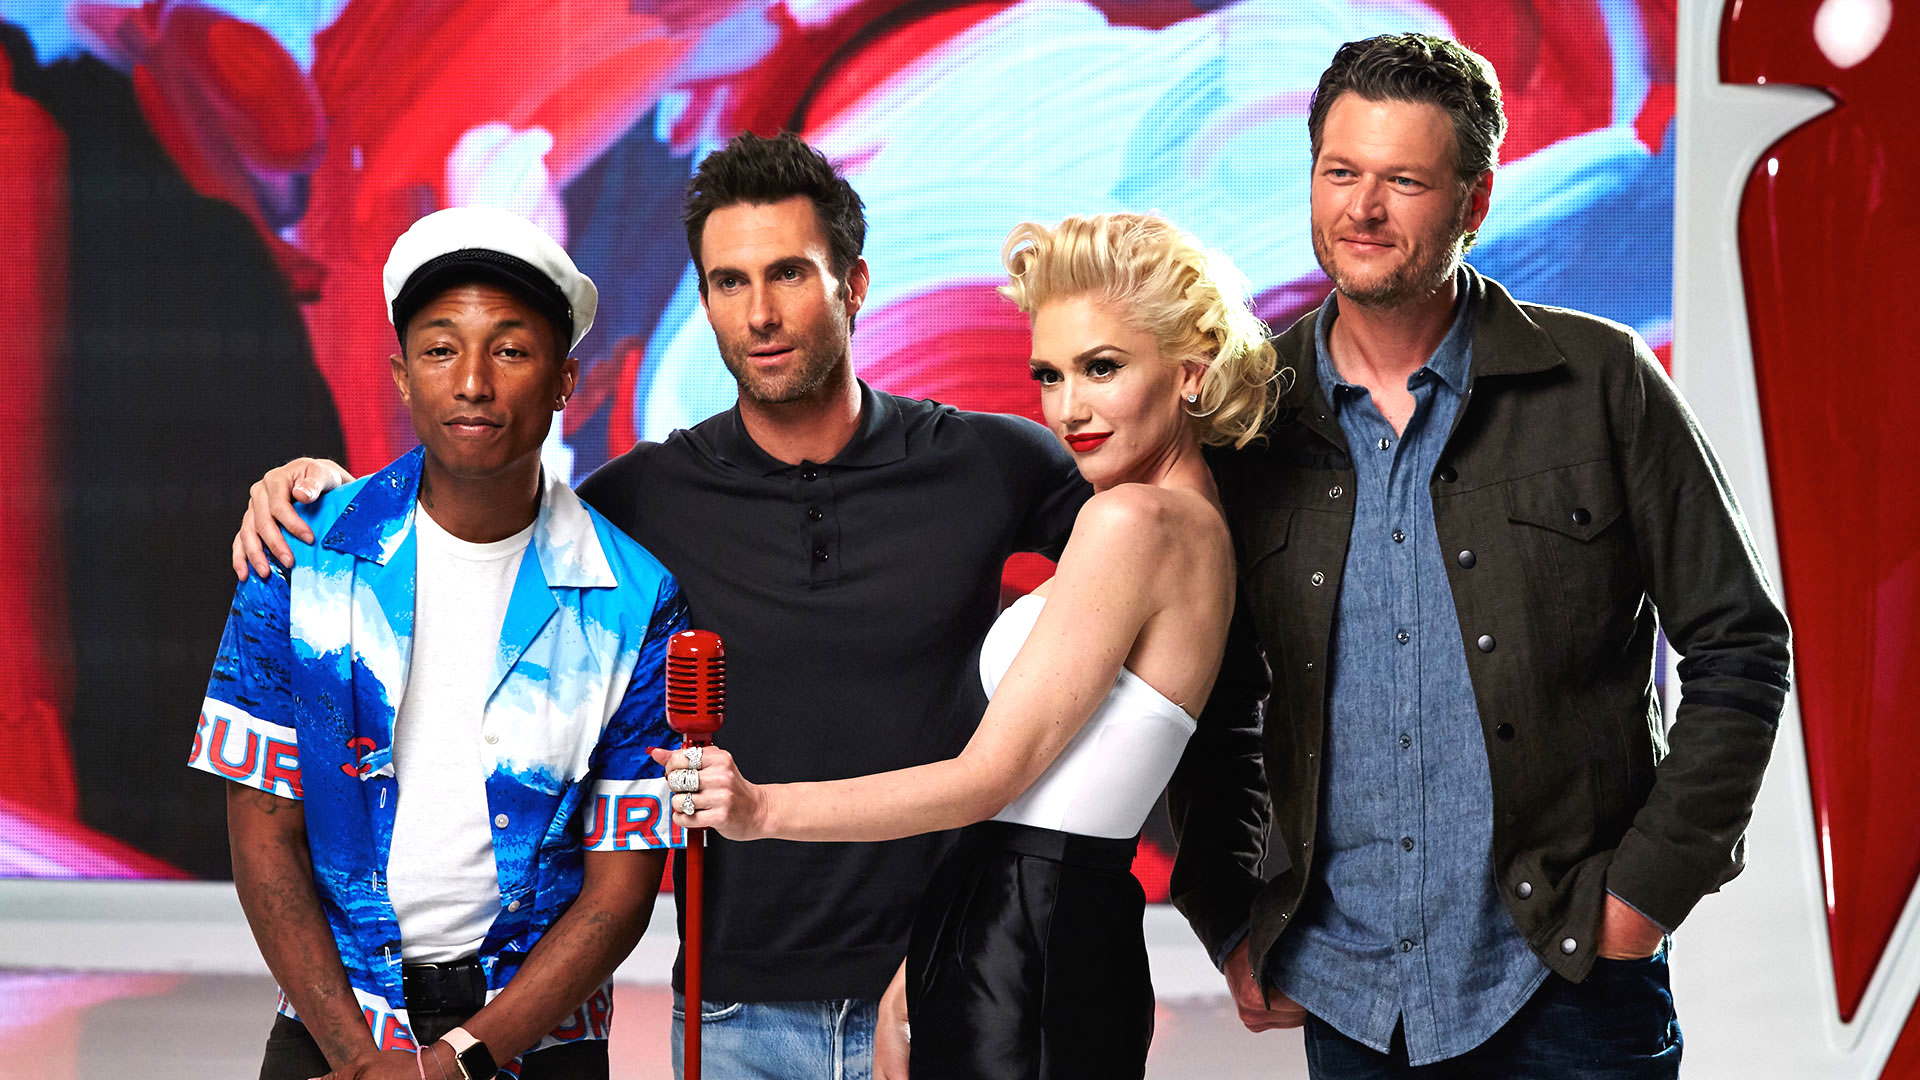 'The Voice' Season 9 Judges Revealed